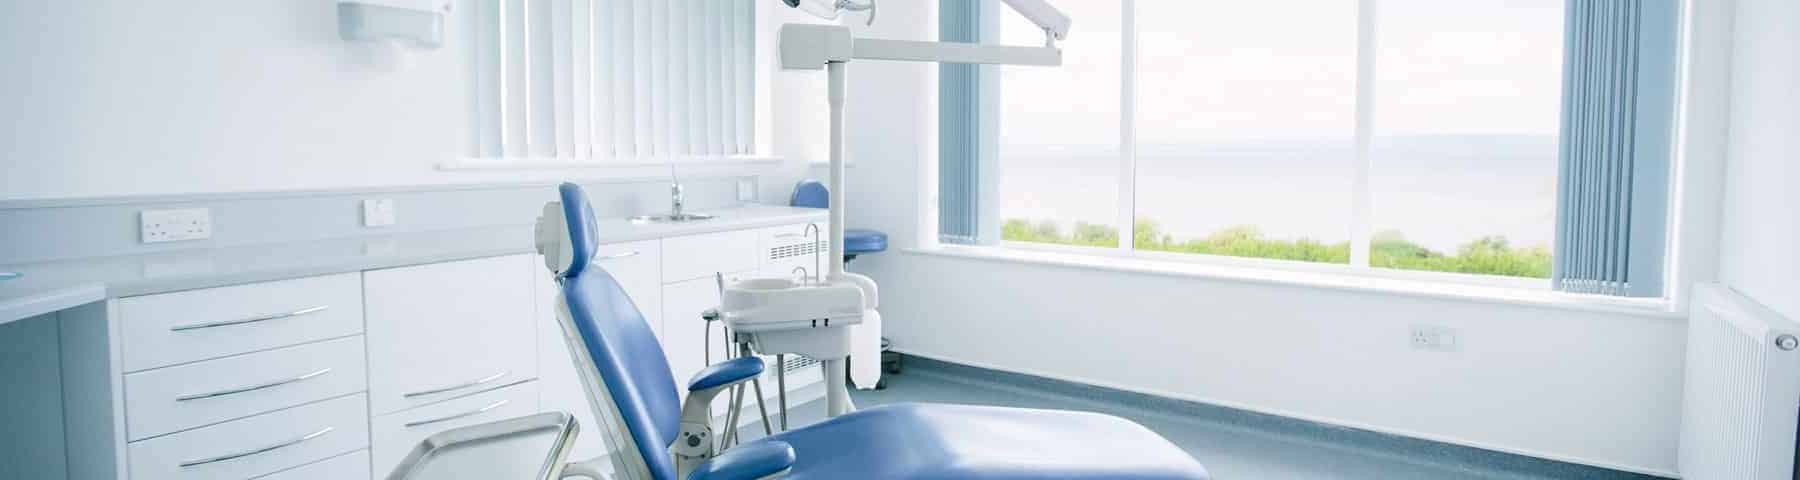 AGH Infection Prevention Control Dental